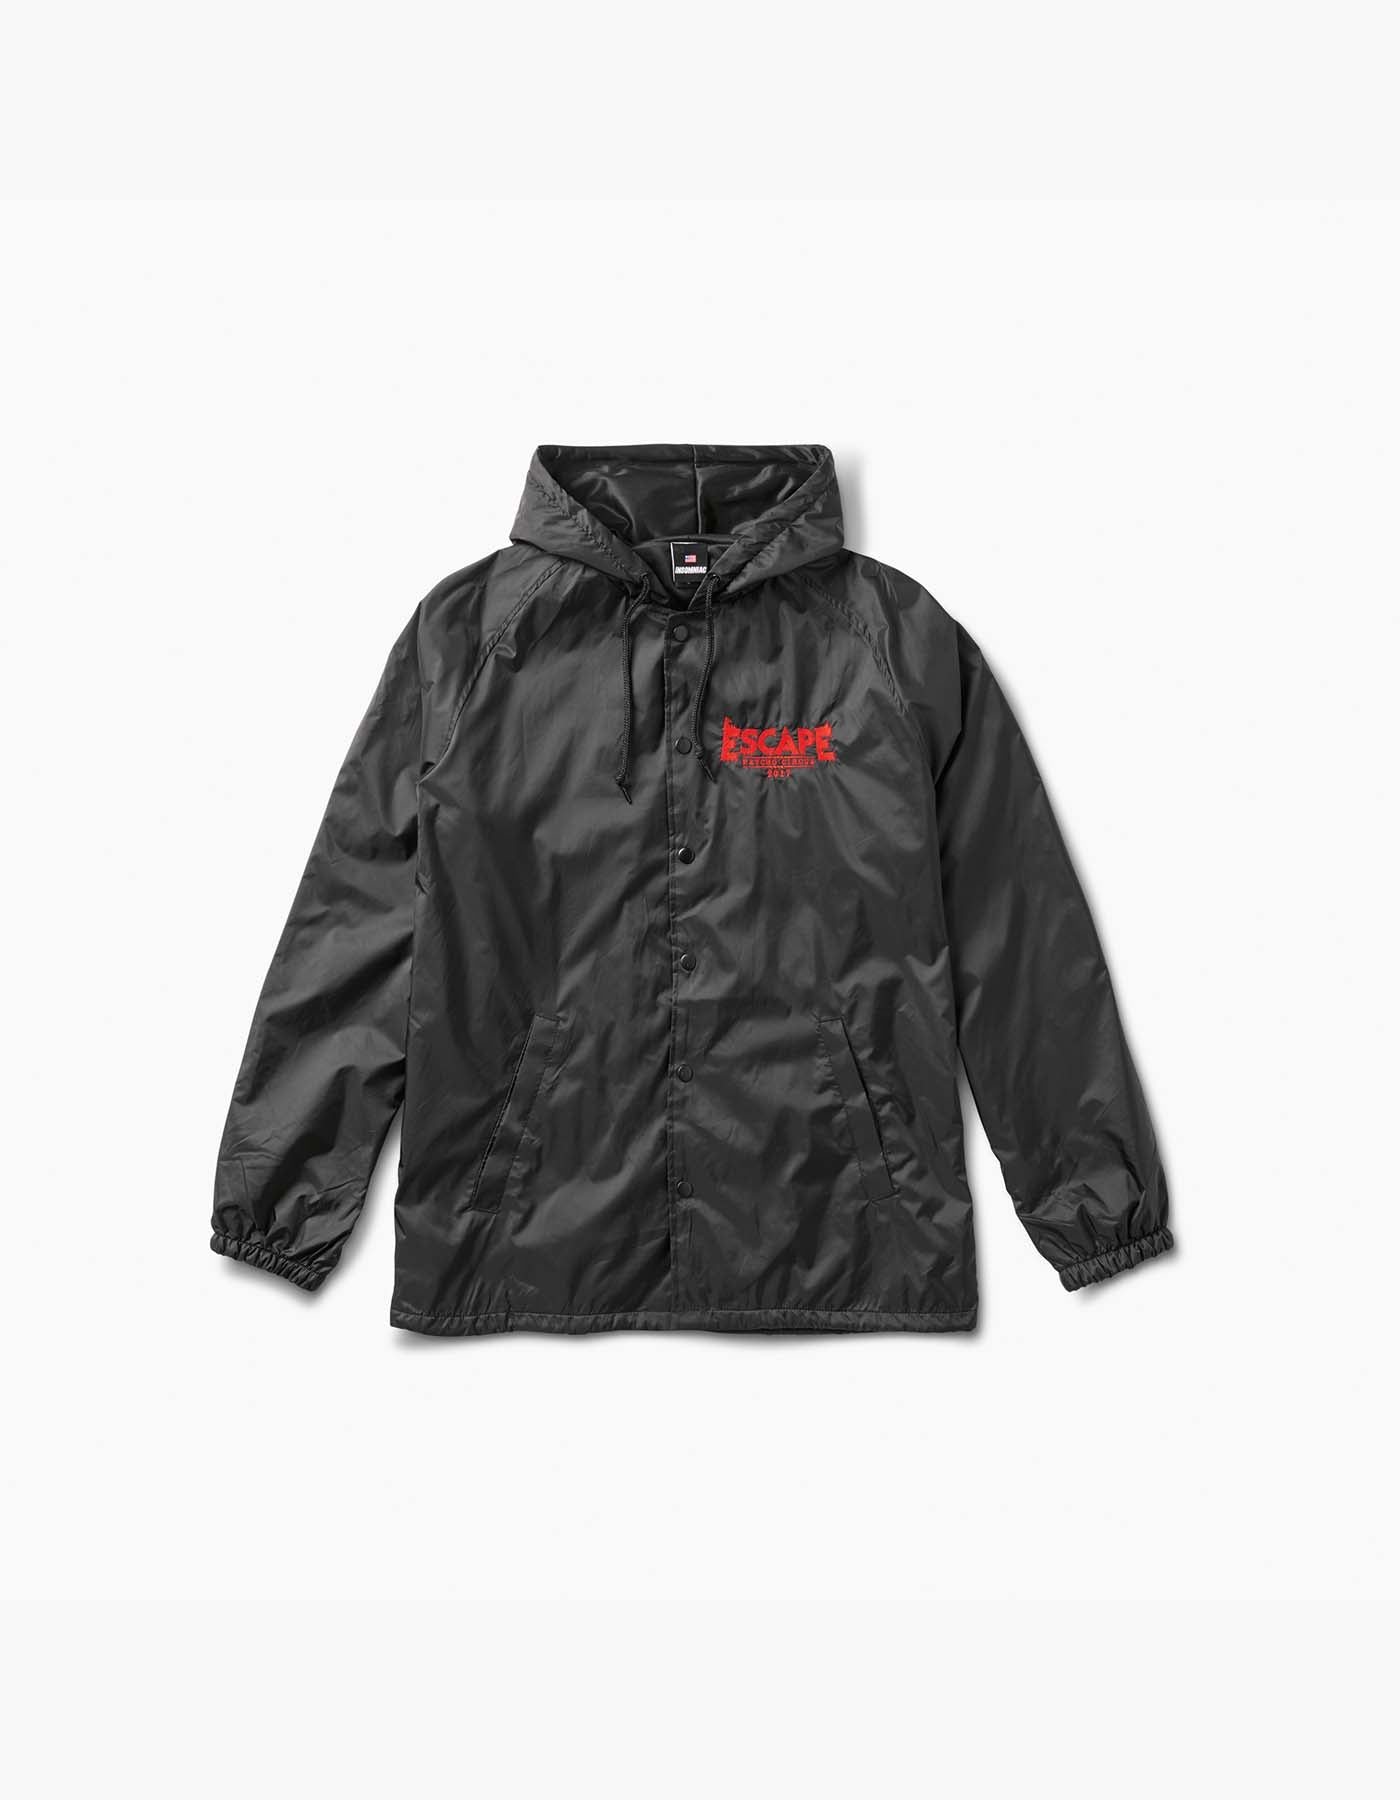 Escape Coaches Jacket